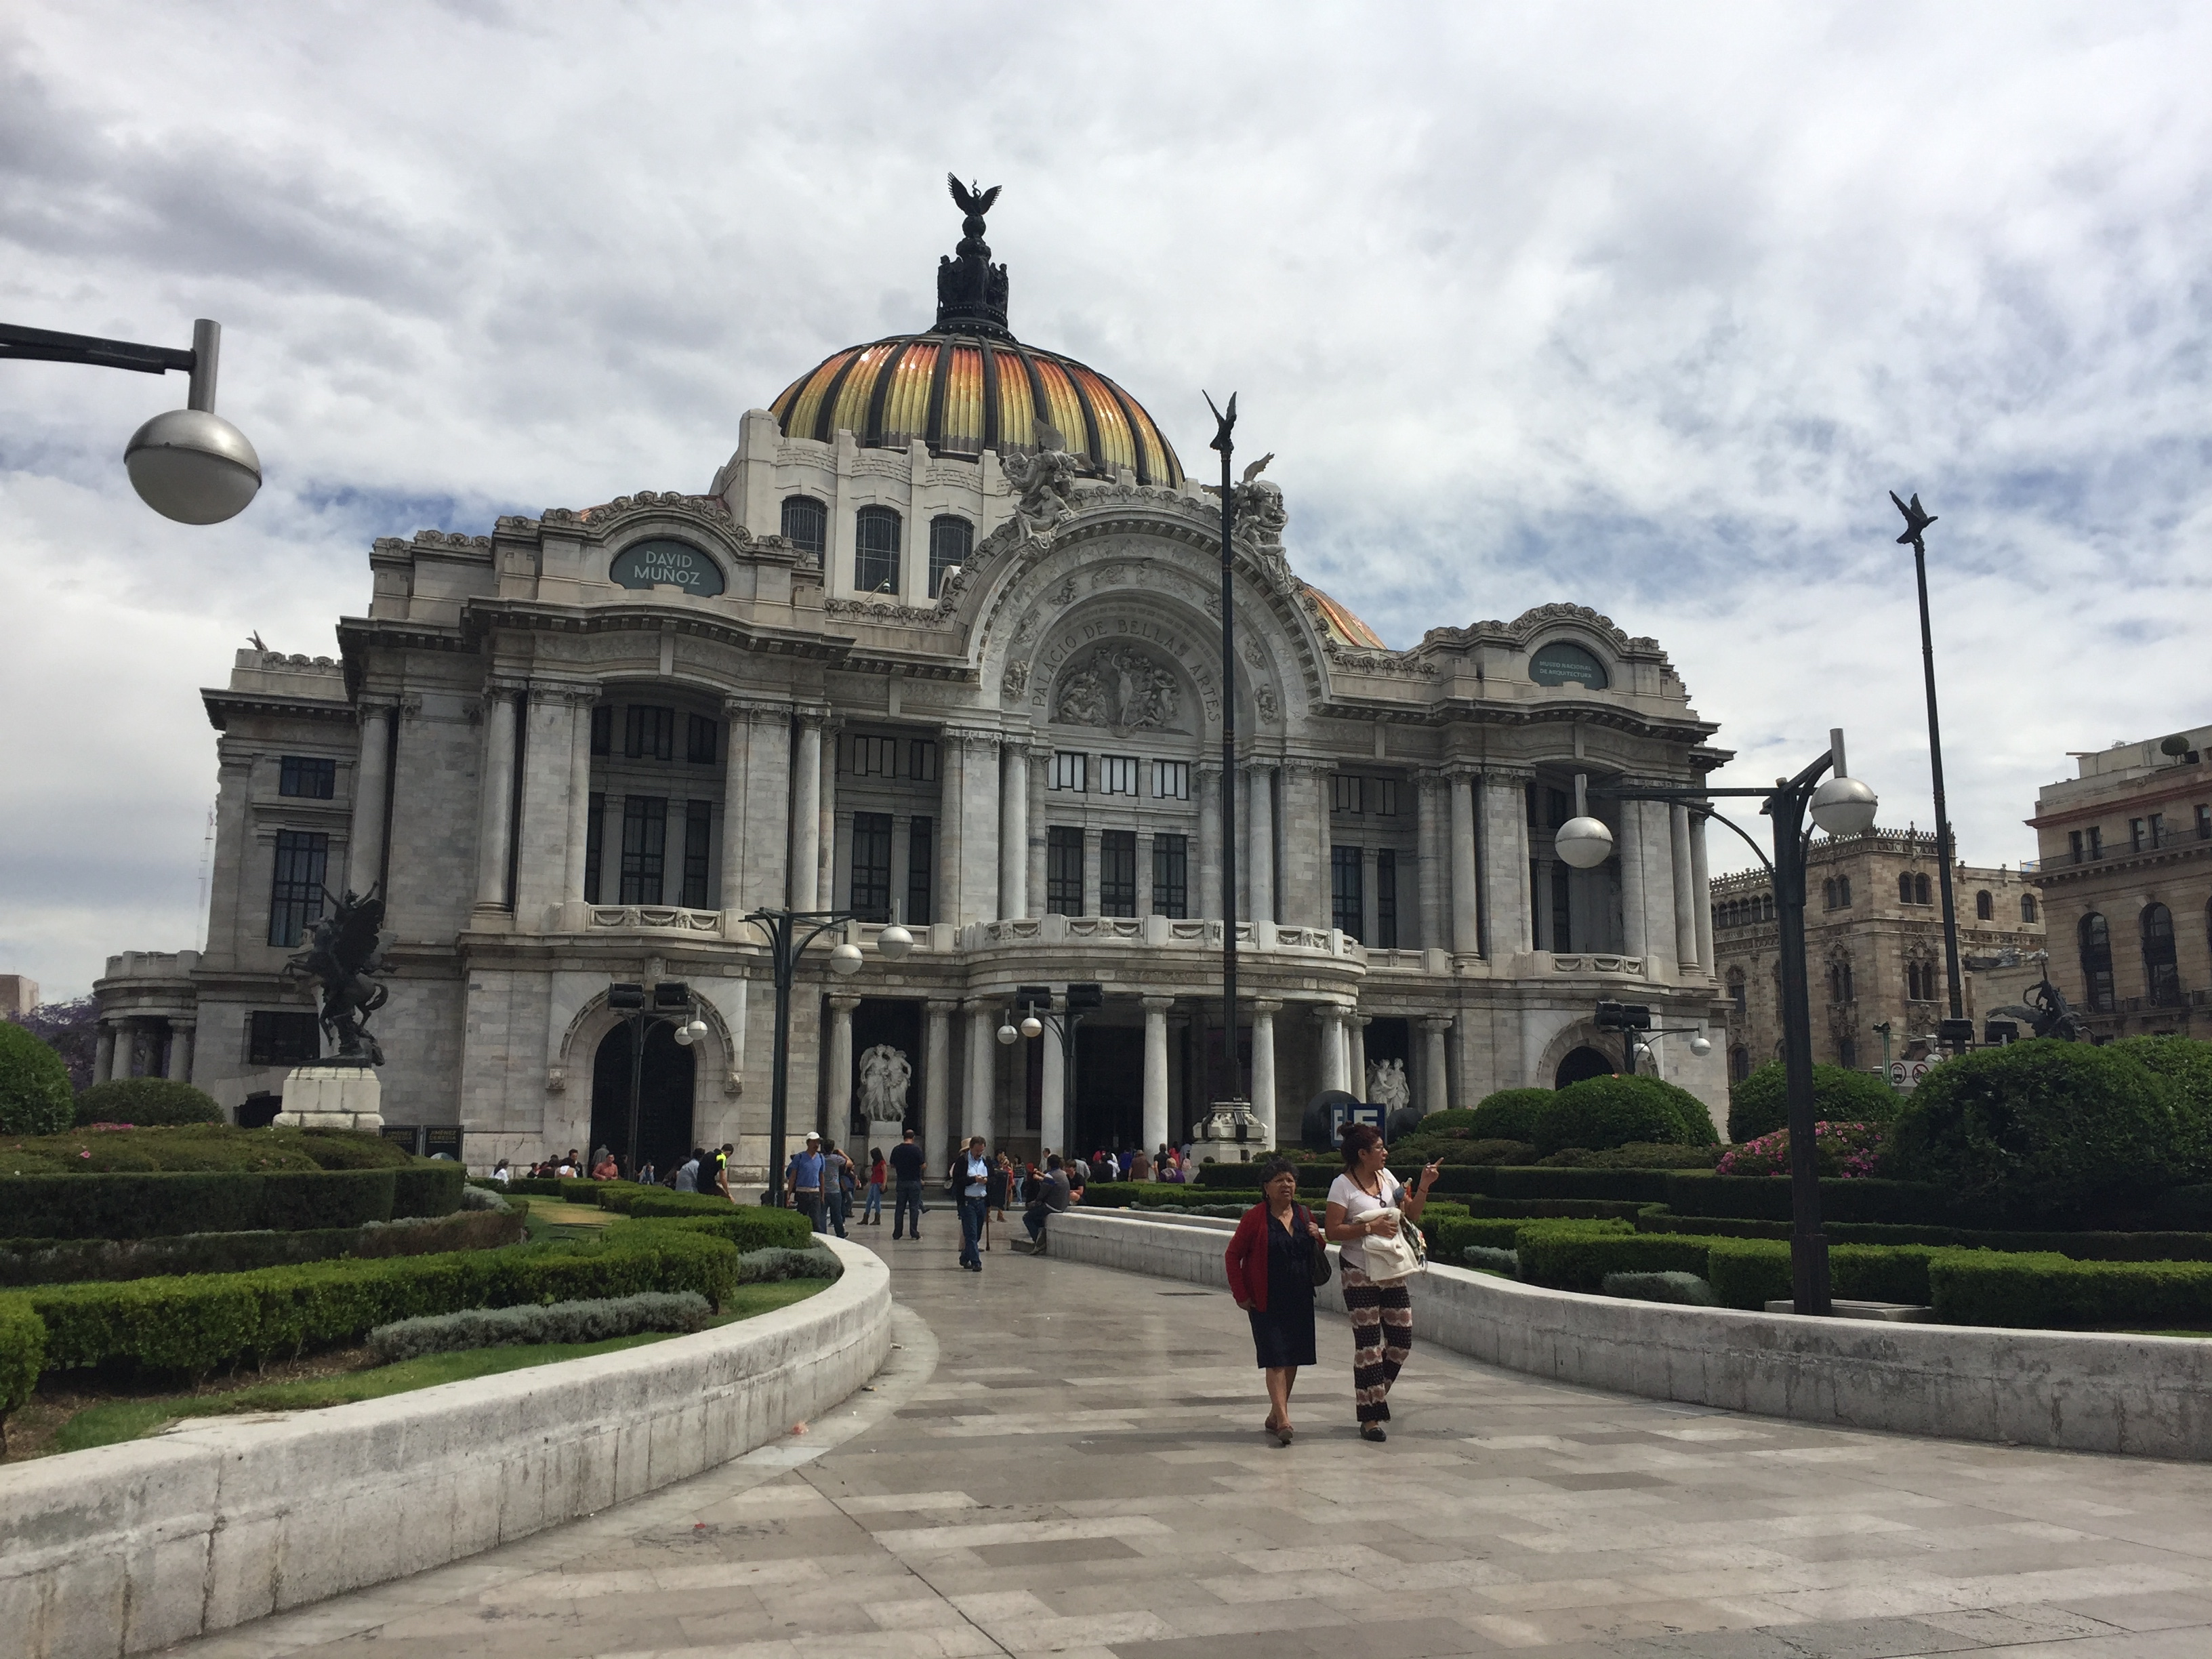 Tourists walk around palacio bellas artes in downtown mexico city.